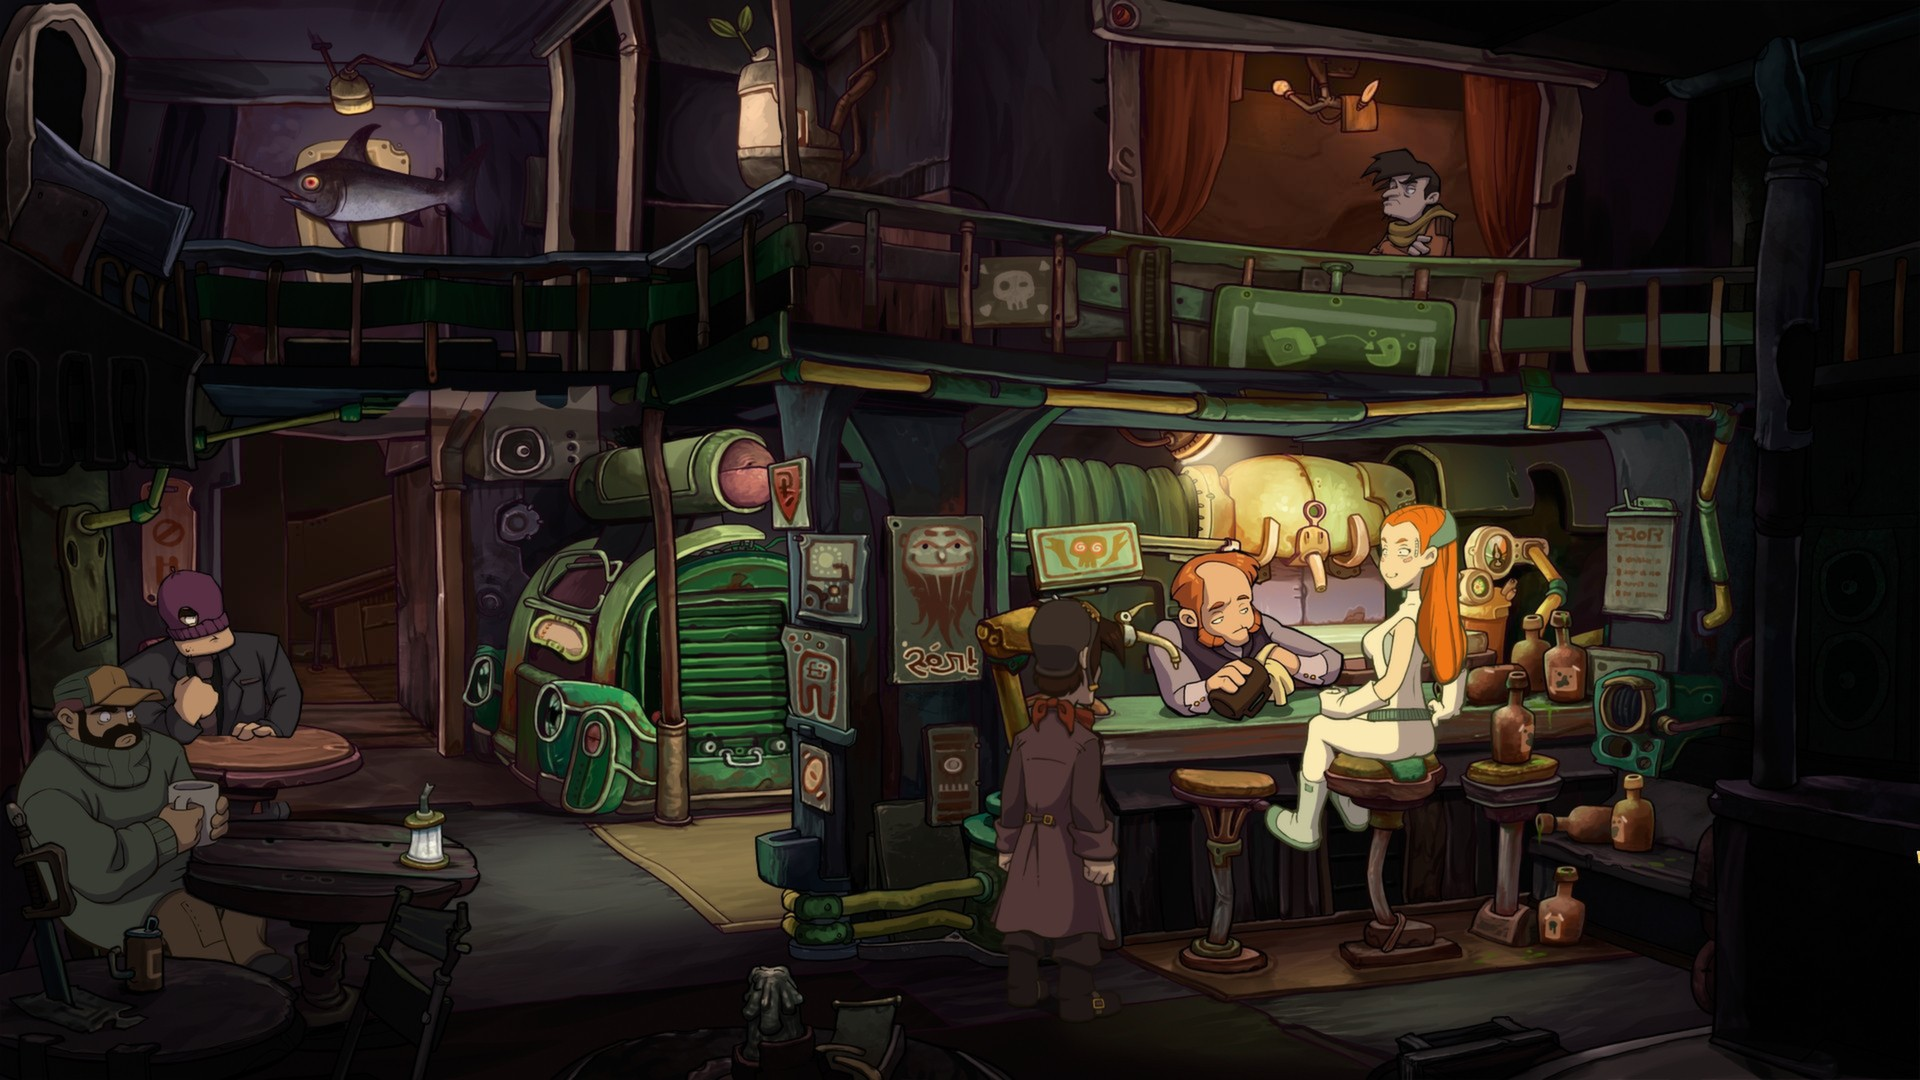 Chaos on Deponia (Steam Key, Region Free)